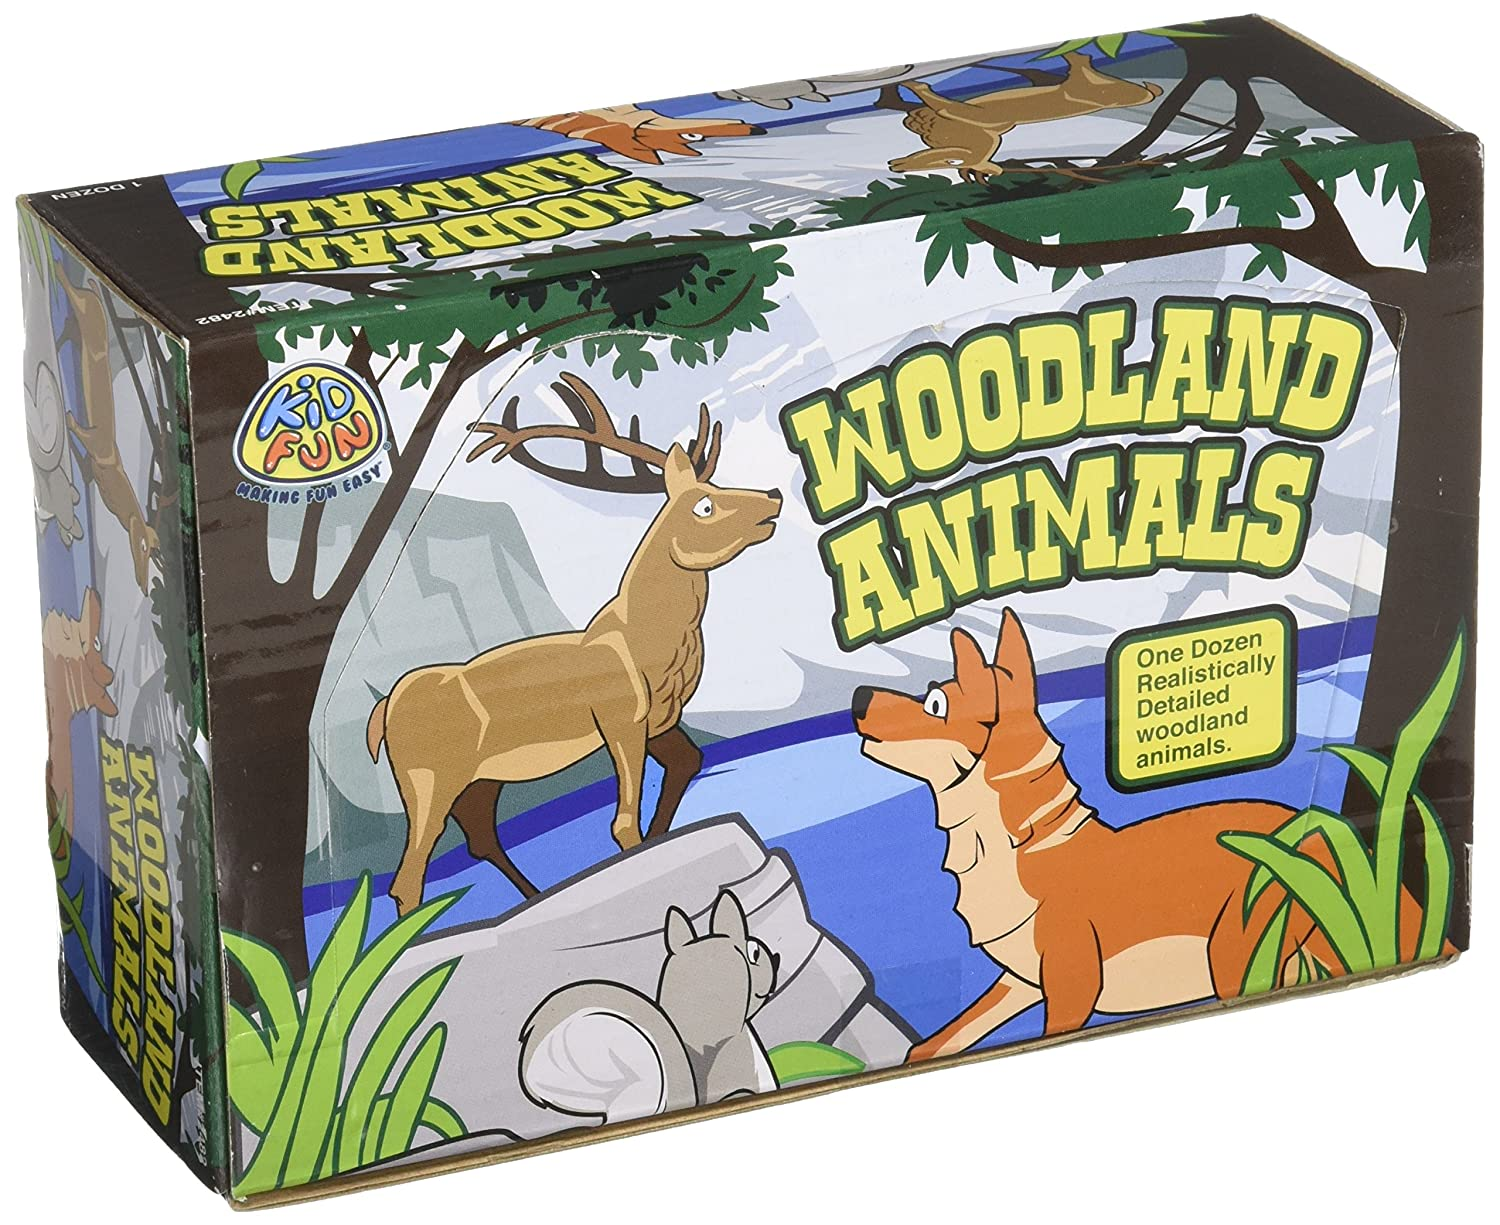 US Toy Woodland Forest Toy Animal Figures Action Figure (1 Dozen) Everready First Aid UST2482